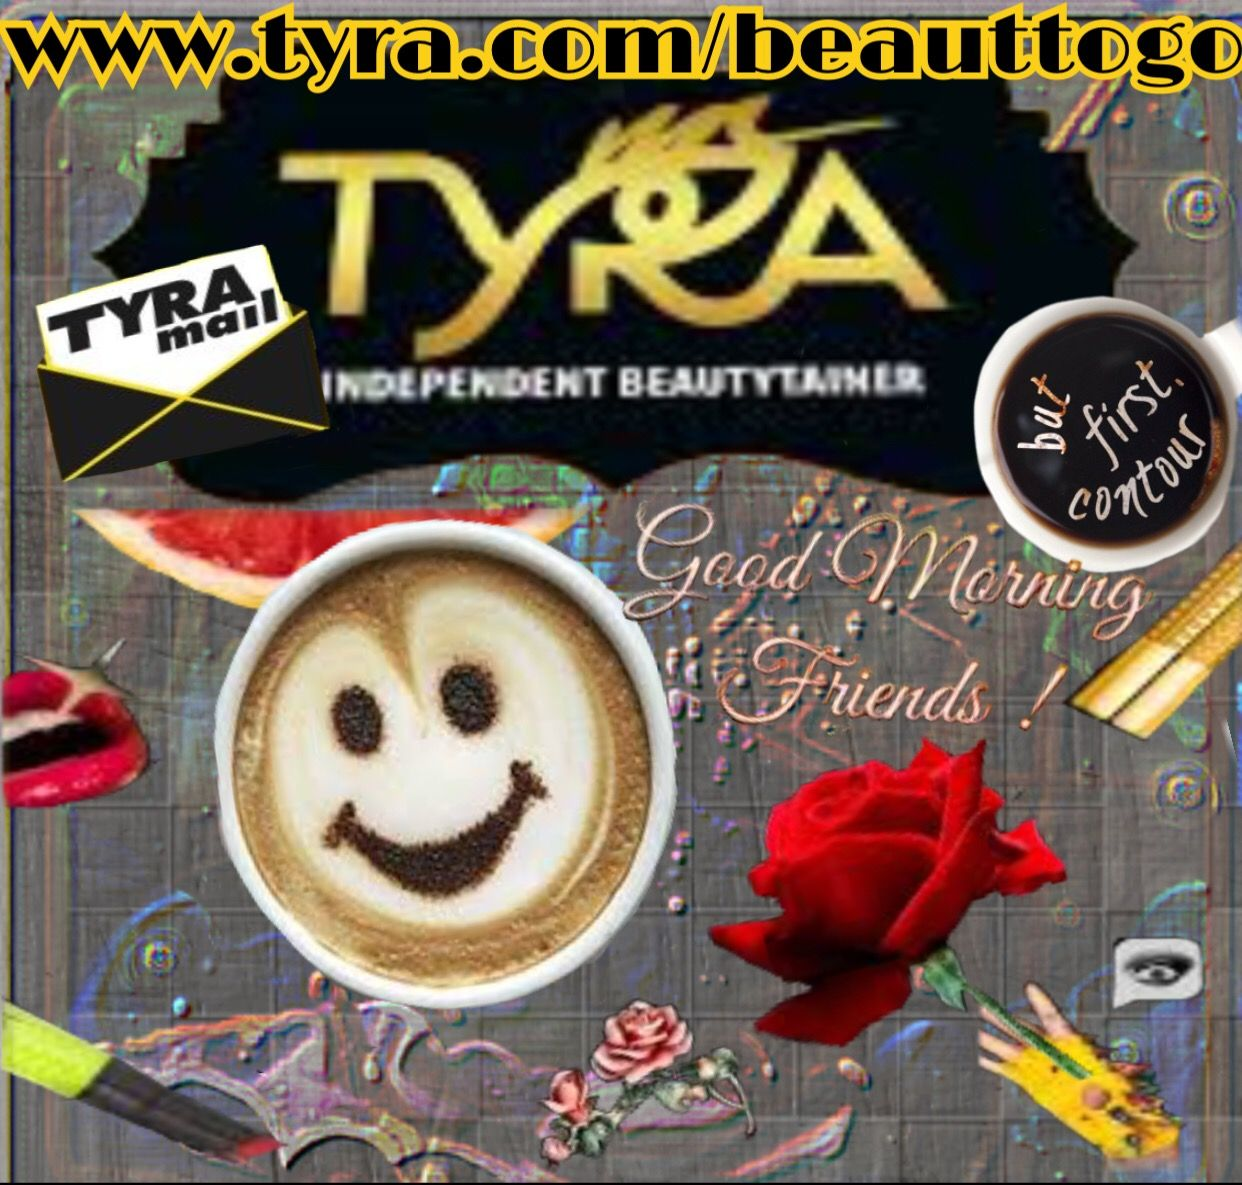 Good morning my beautiful hotties may you be blessed and may you have the absolute wonderful day ever 😘😘😘😘💄👄www.tyra.com/beauttogo #tyrabanks #tyrabeauty #makeup #tyover #contour #beauttogo #business #crew #bossbabe #morning #tuesday #tyra #beauty #americasnexttopmodel #vitiheal #vitiheal03 ❤️💋❤️️👄💄💋